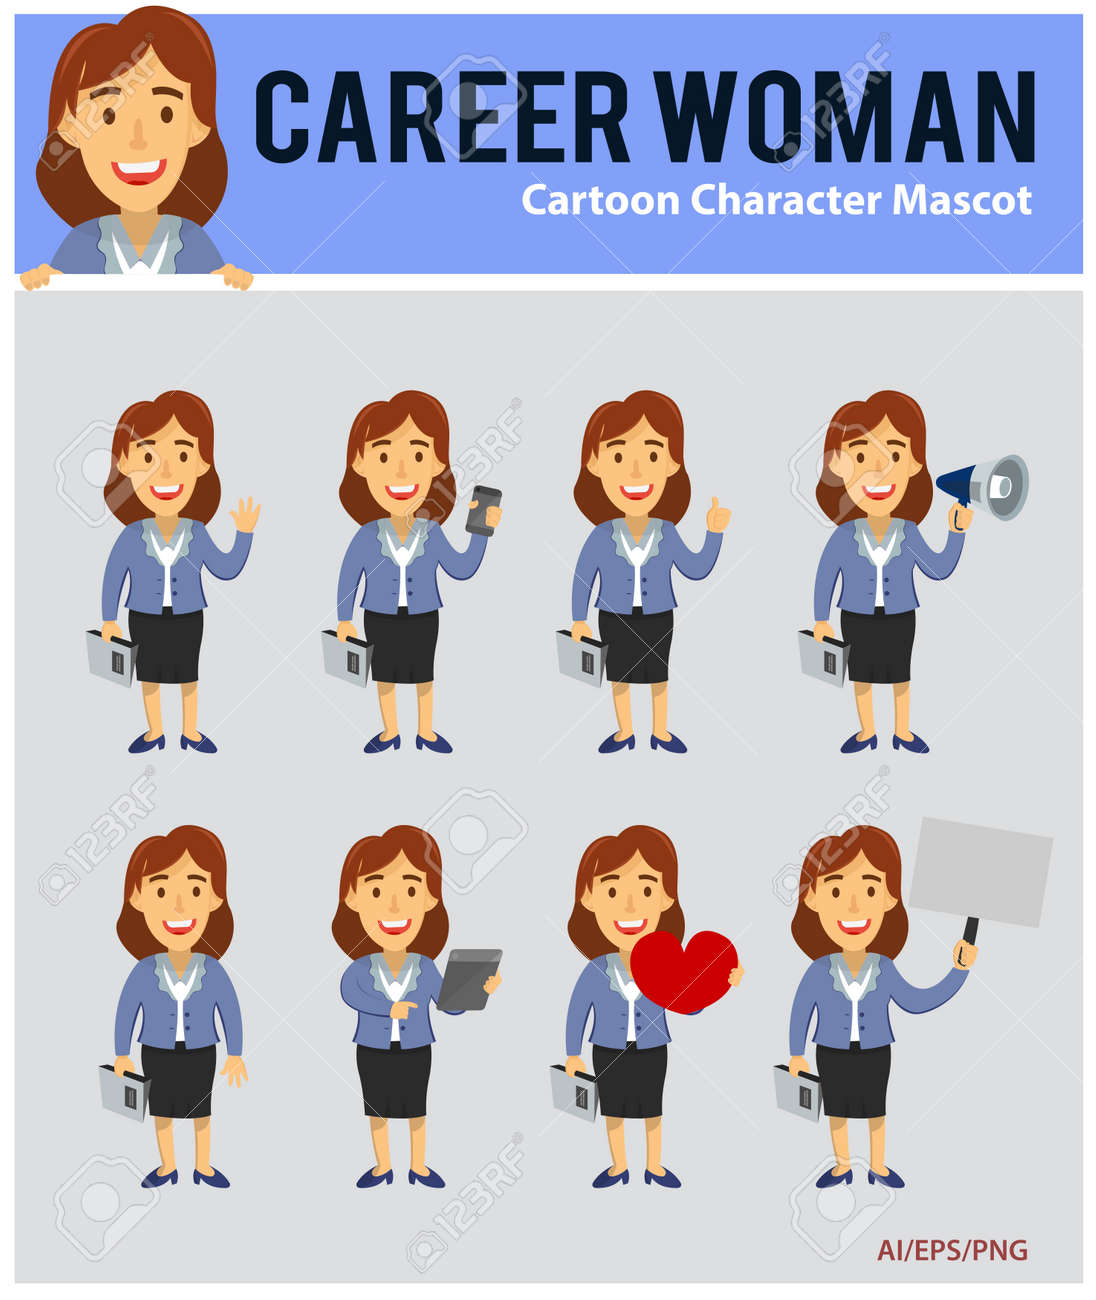 Career Woman Cartoon Mascot Royalty Free Cliparts Vectors And Stock Illustration Image 81929552